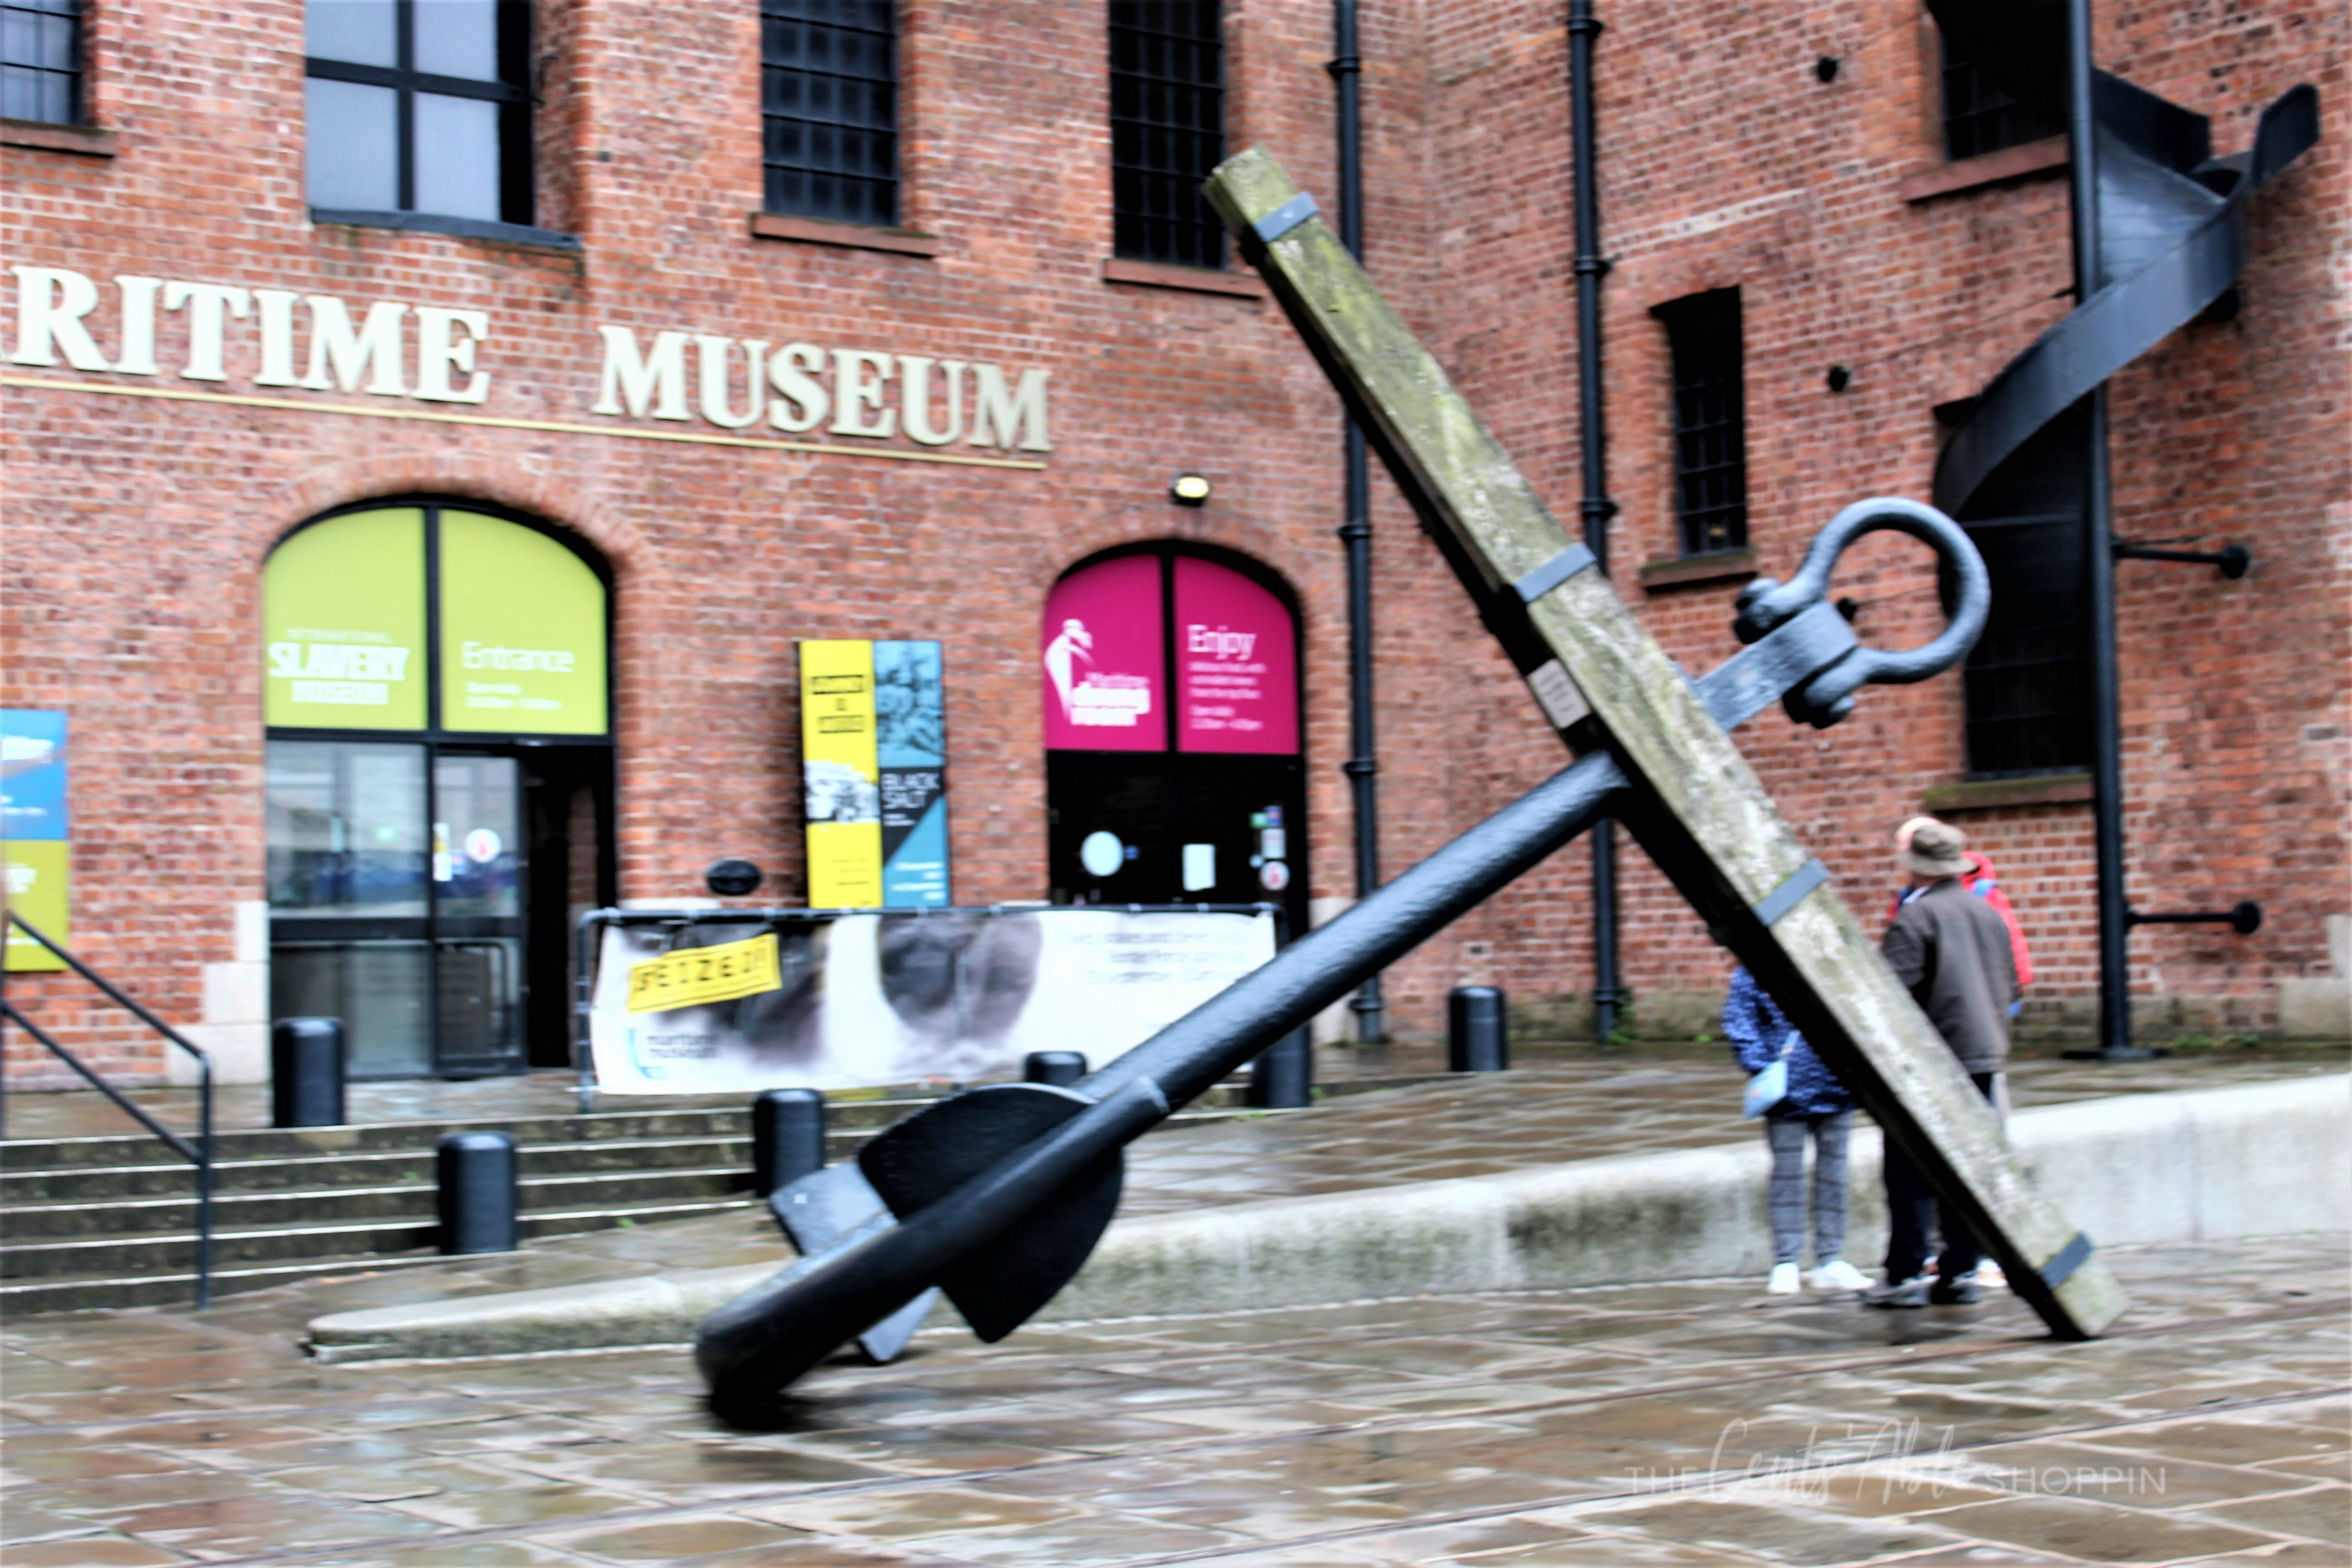 Maritime Museum, Liverpool, England